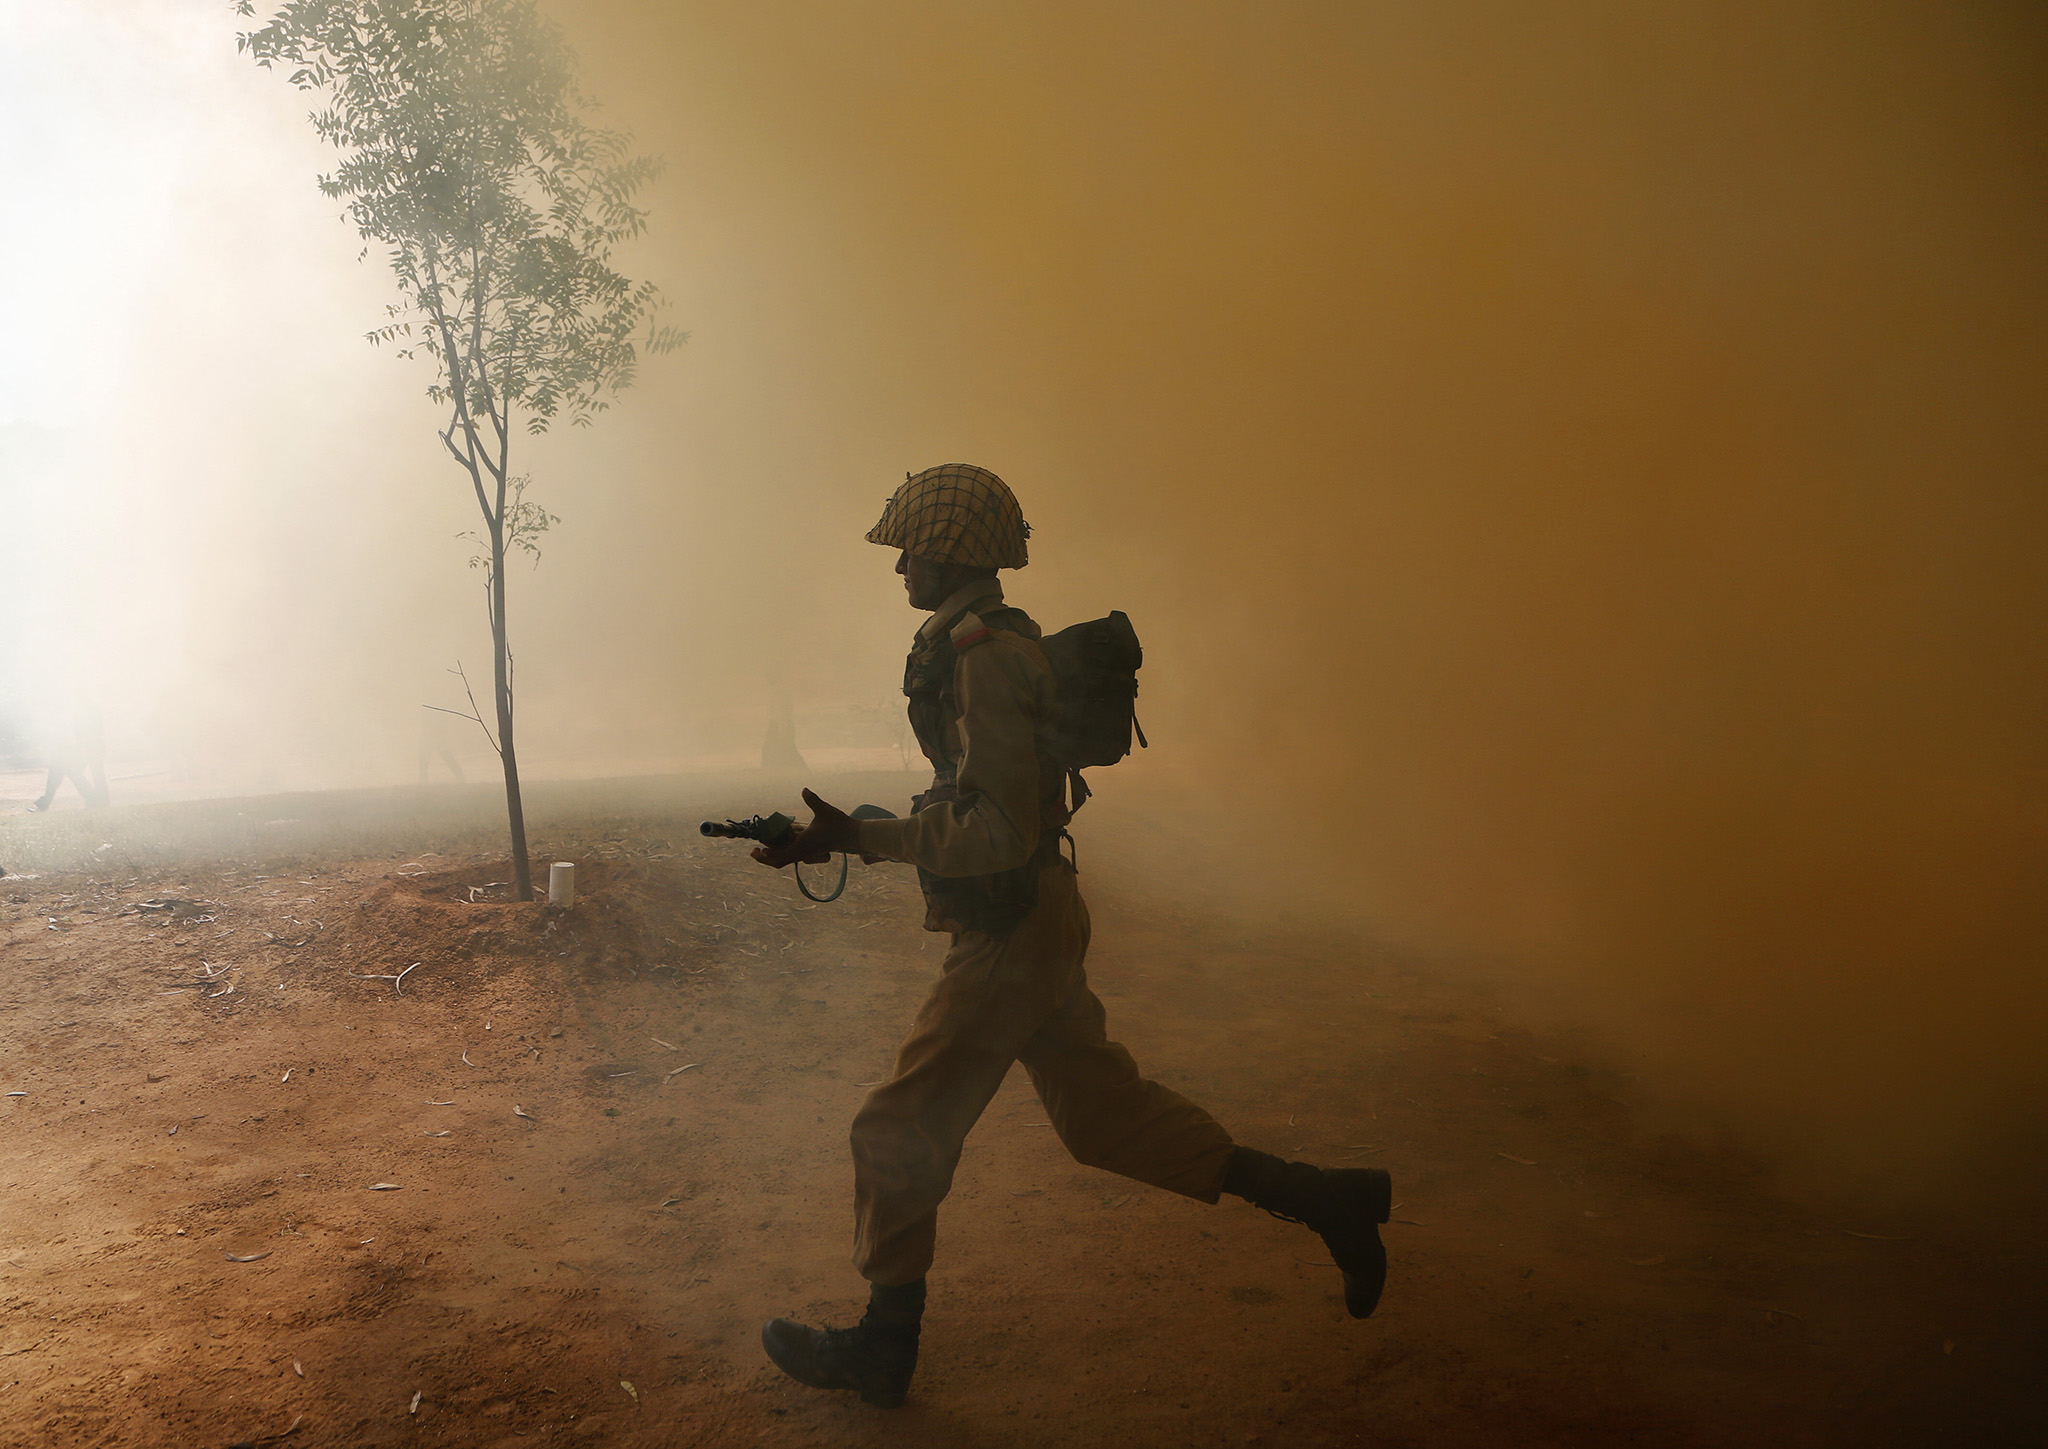 An Indian army soldier runs amid smoke from canisters during a session to showcase skills at the Army Service Corps training centre in Bangalore, India, Monday, Dec. 5, 2016. (AP Photo/Aijaz Rahi)